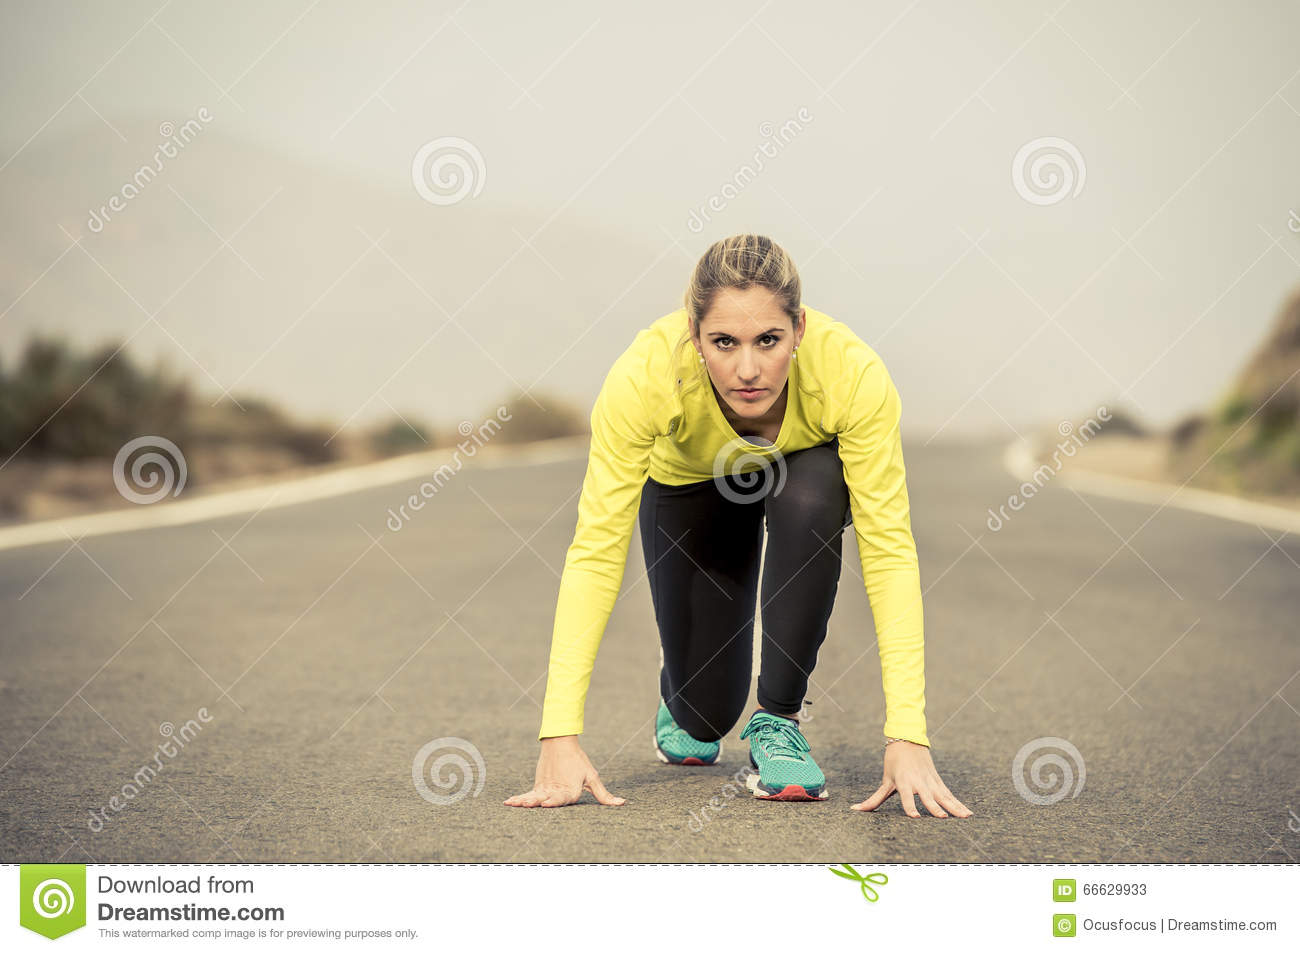 Attractive blond sport woman ready to start running practice training race starting on asphalt road mountain landscape